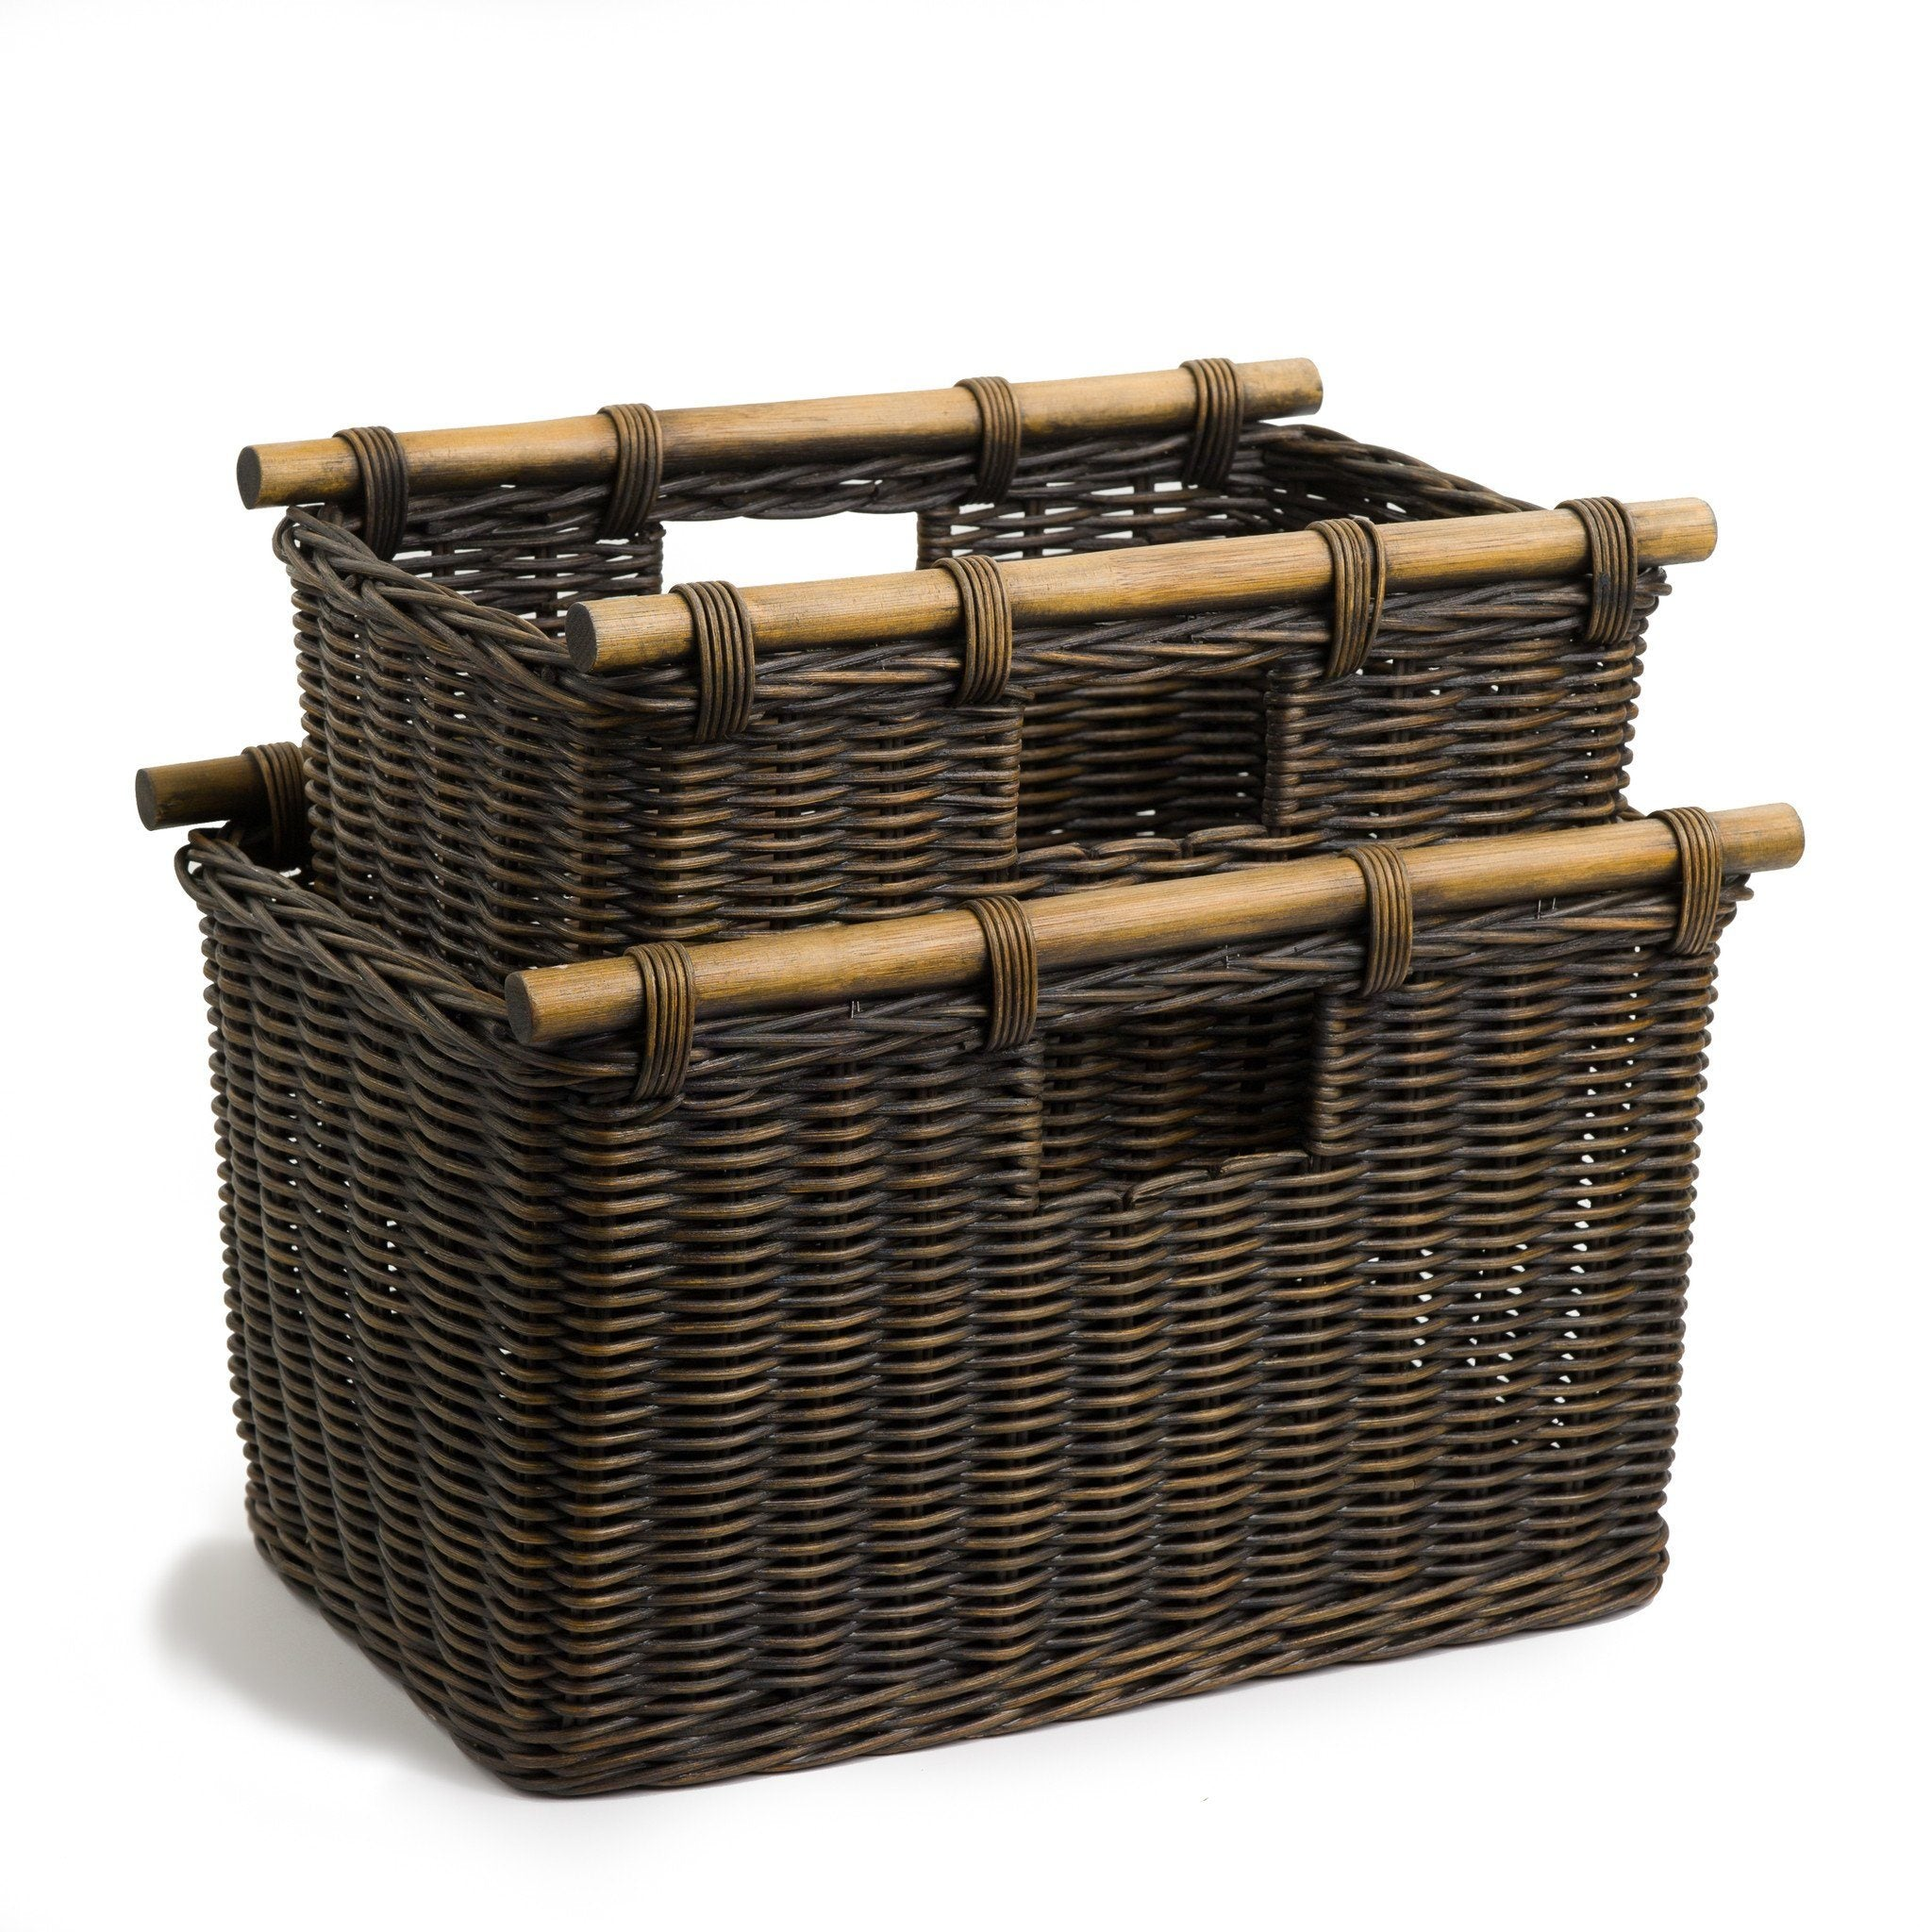 Tall Narrow Wicker Storage Basket In Antique Walnut Brown, 2 Sizes Shown |  The Basket ...